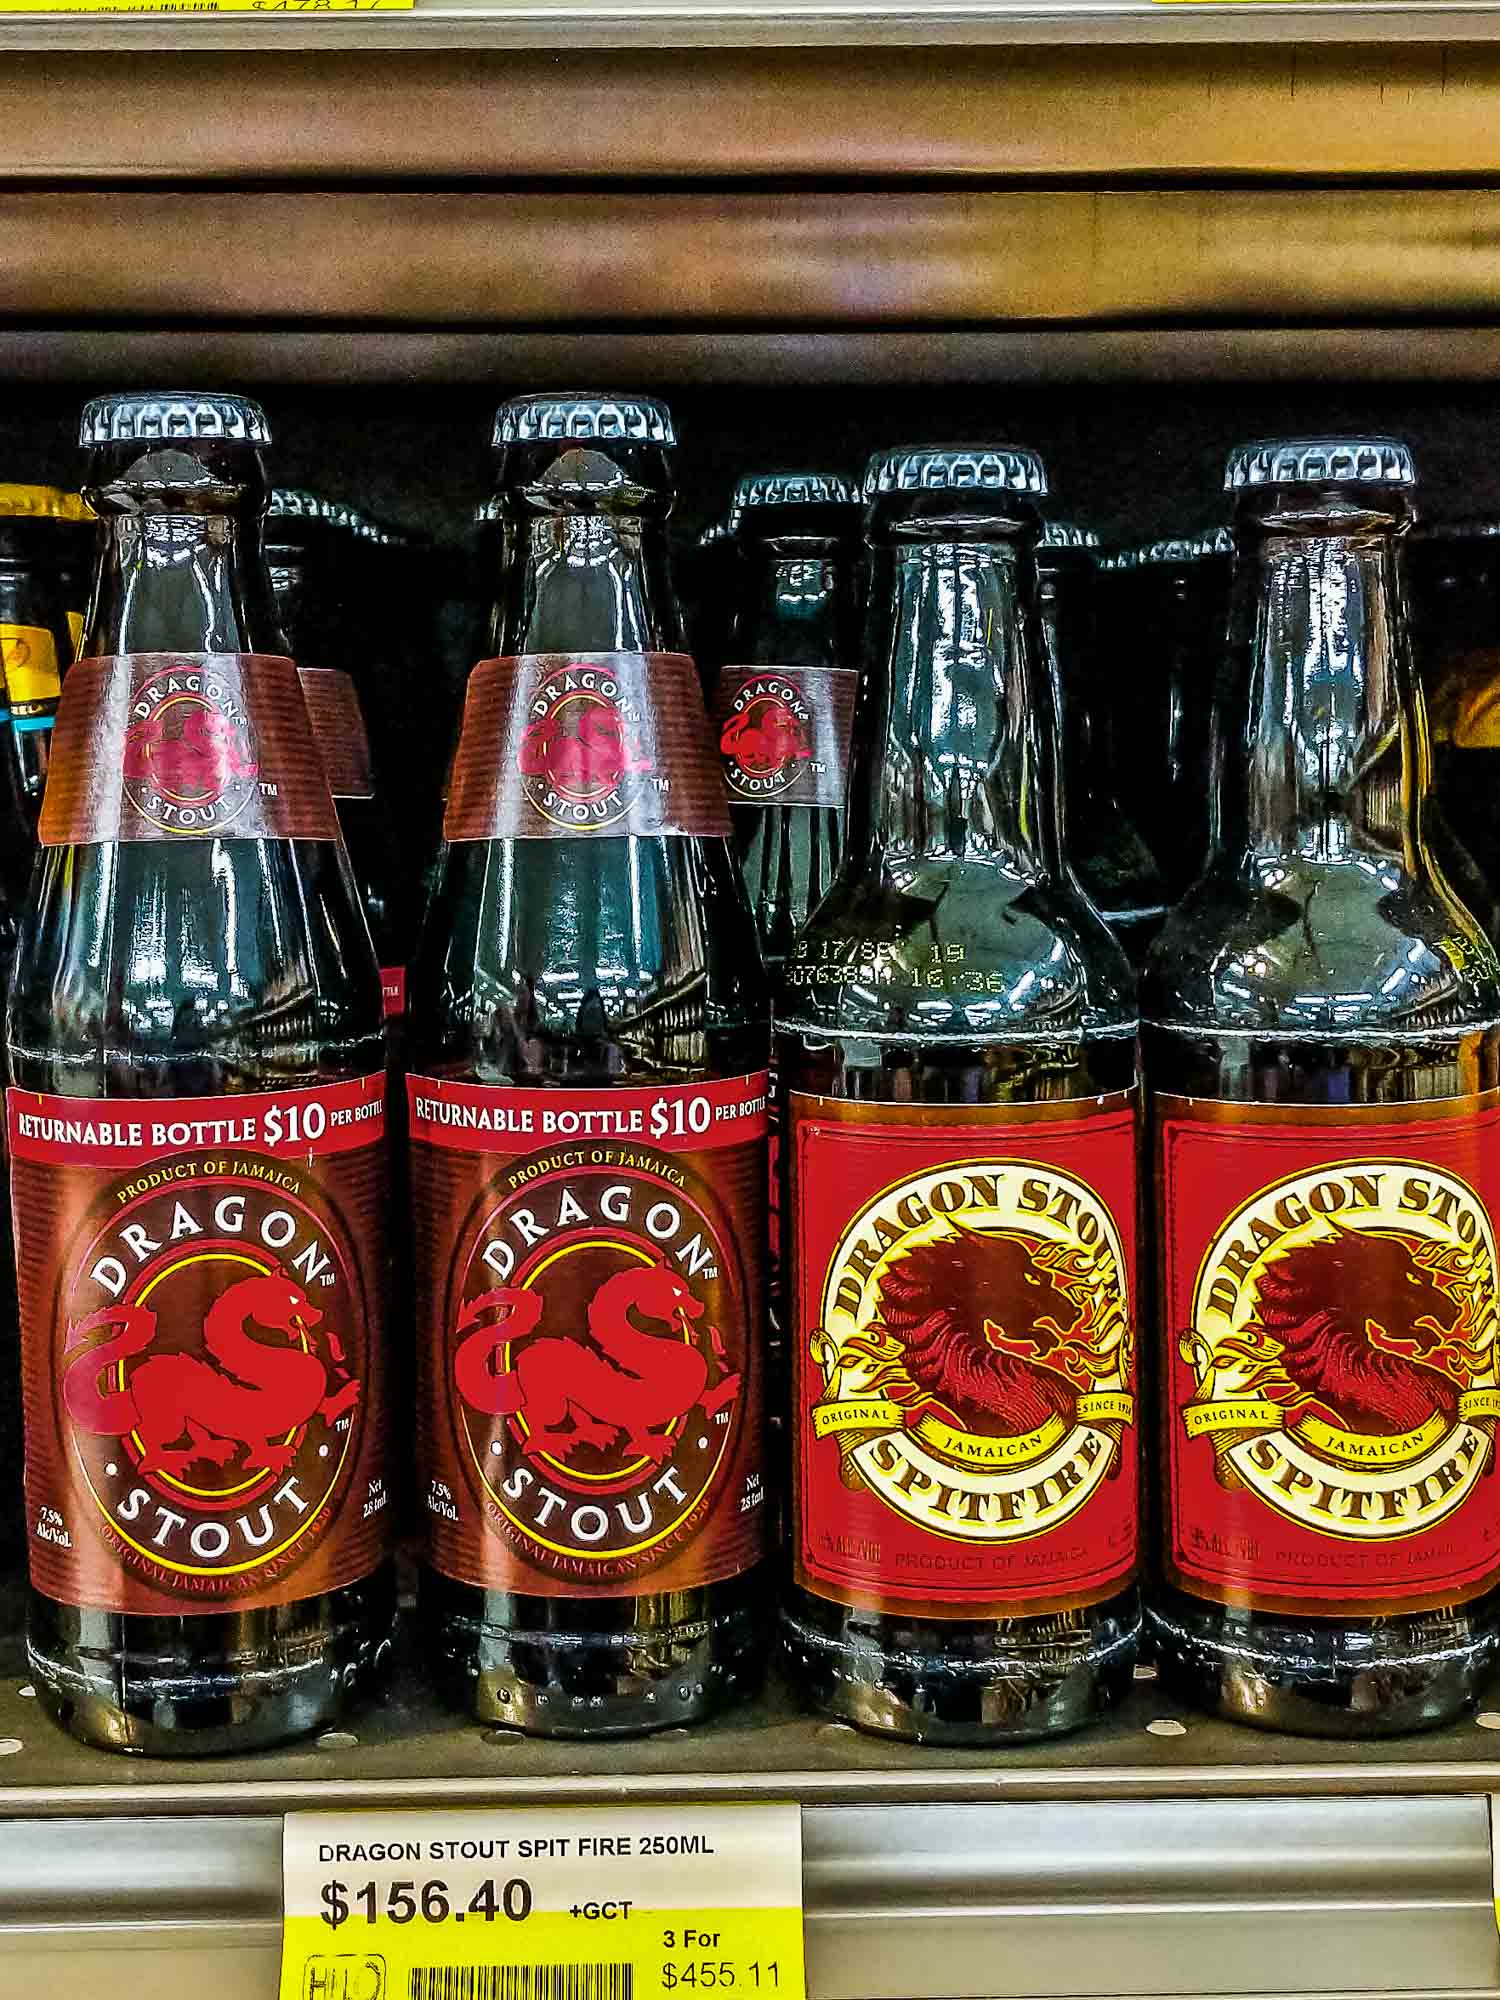 Dragon Stout a popular Jamaican beer on a supermarket shelf.